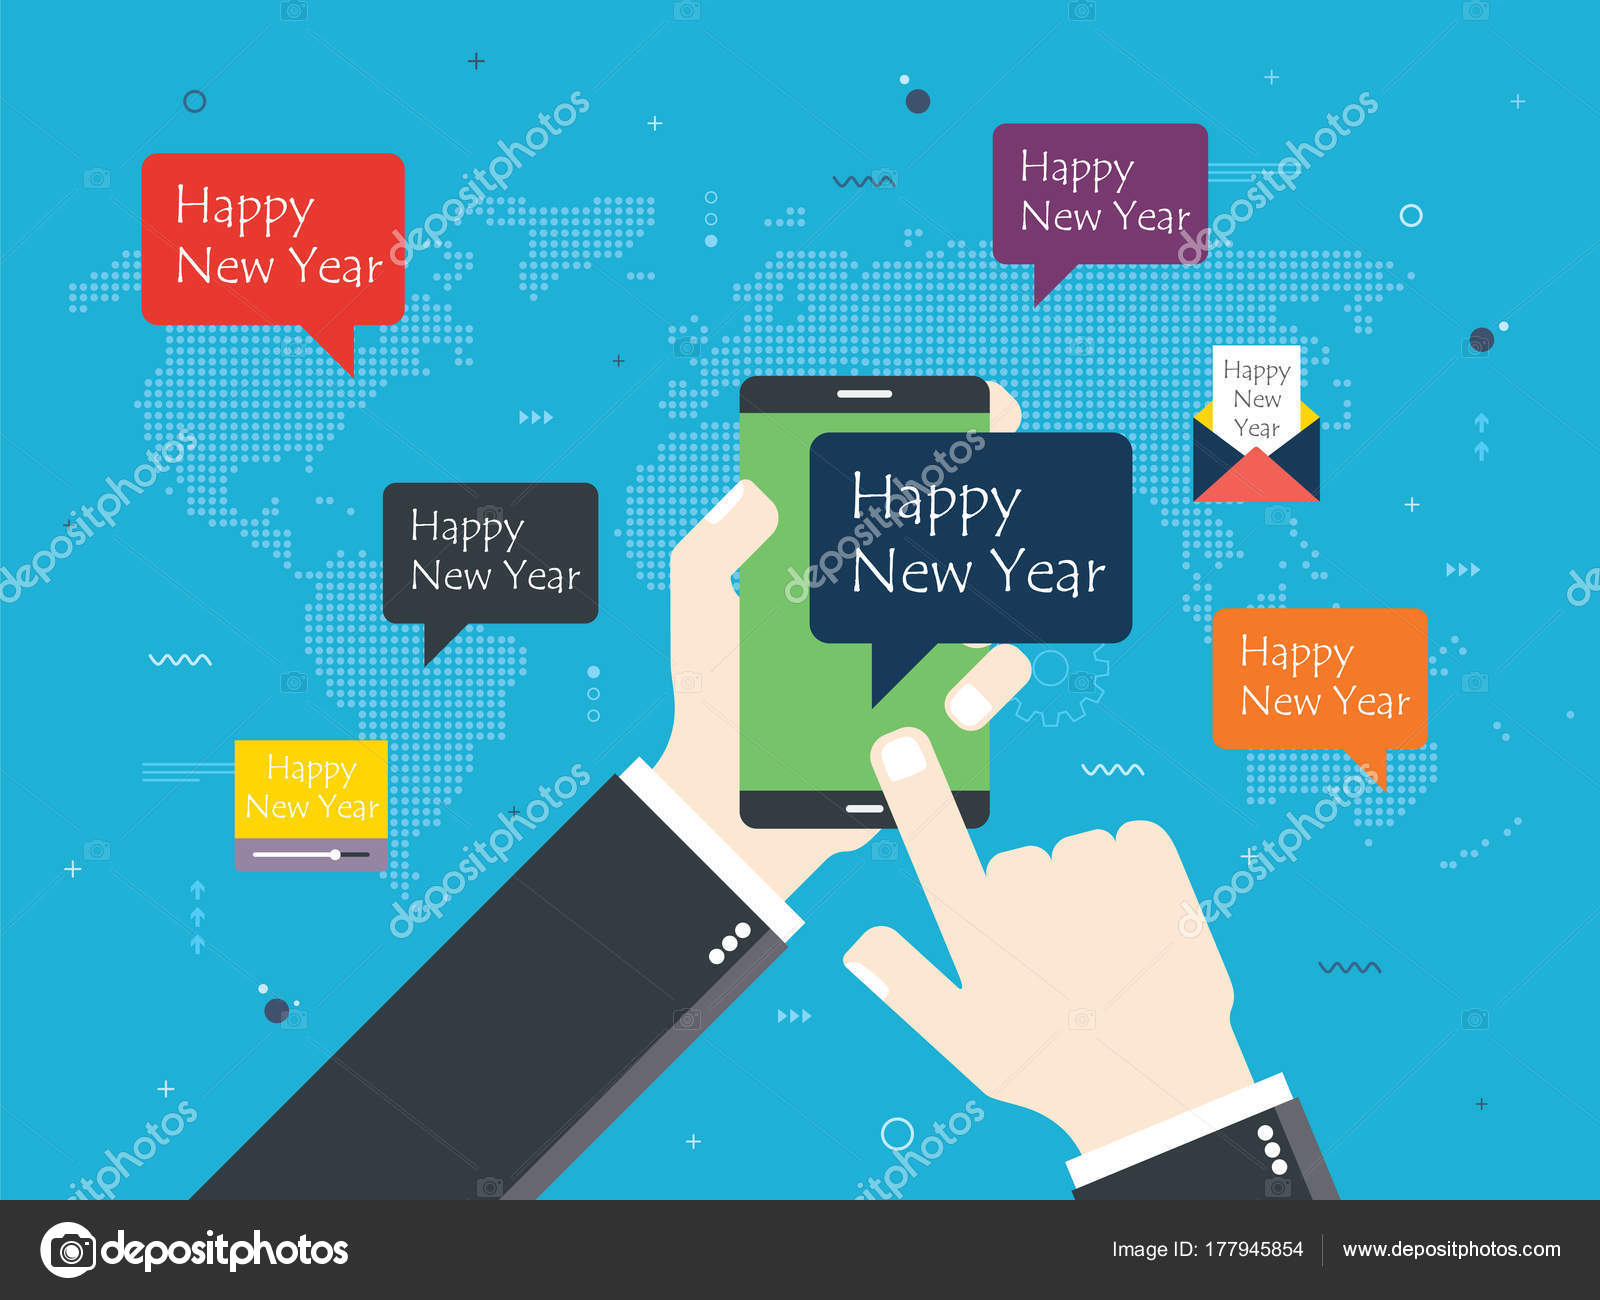 hand holding smartphone with happy new year message map of the world email and video with message of happy new year concept of social media